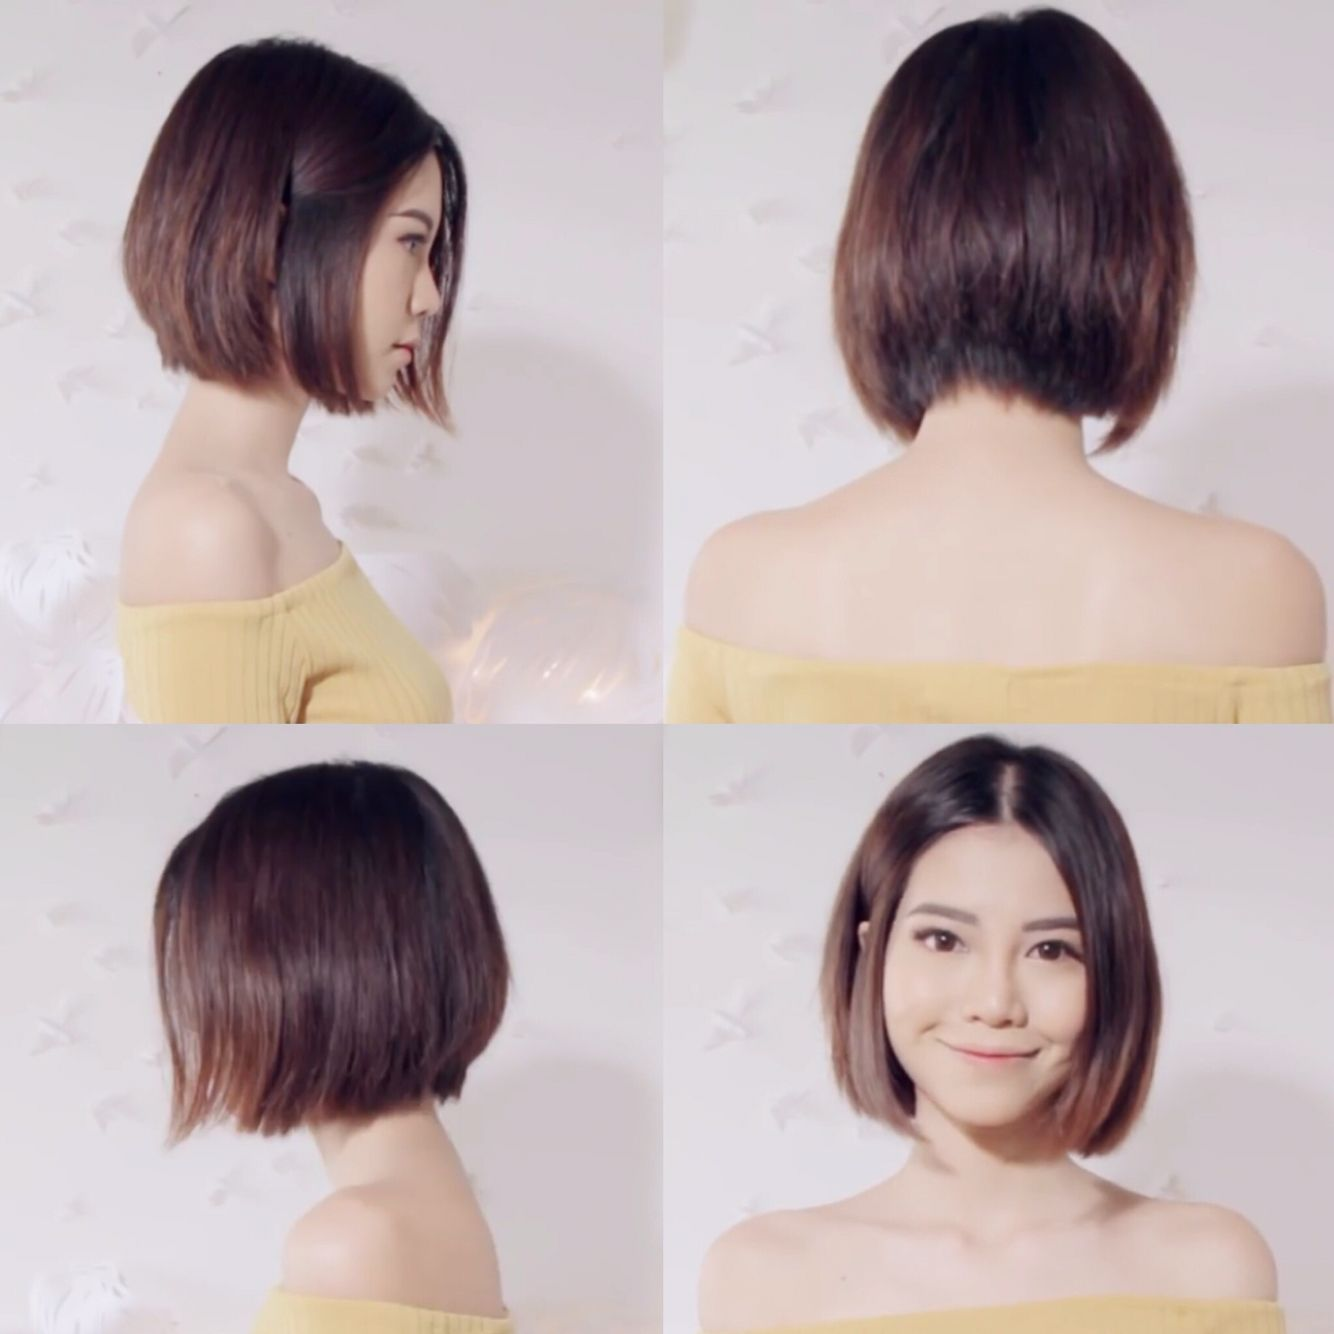 Sichenmakeupholic on YouTube is short hair goals #asian #bob #shorthair # haircut #beauty #ombre #hairstyle #cute … | Asian short hair, Korean short  hair, Asian hair